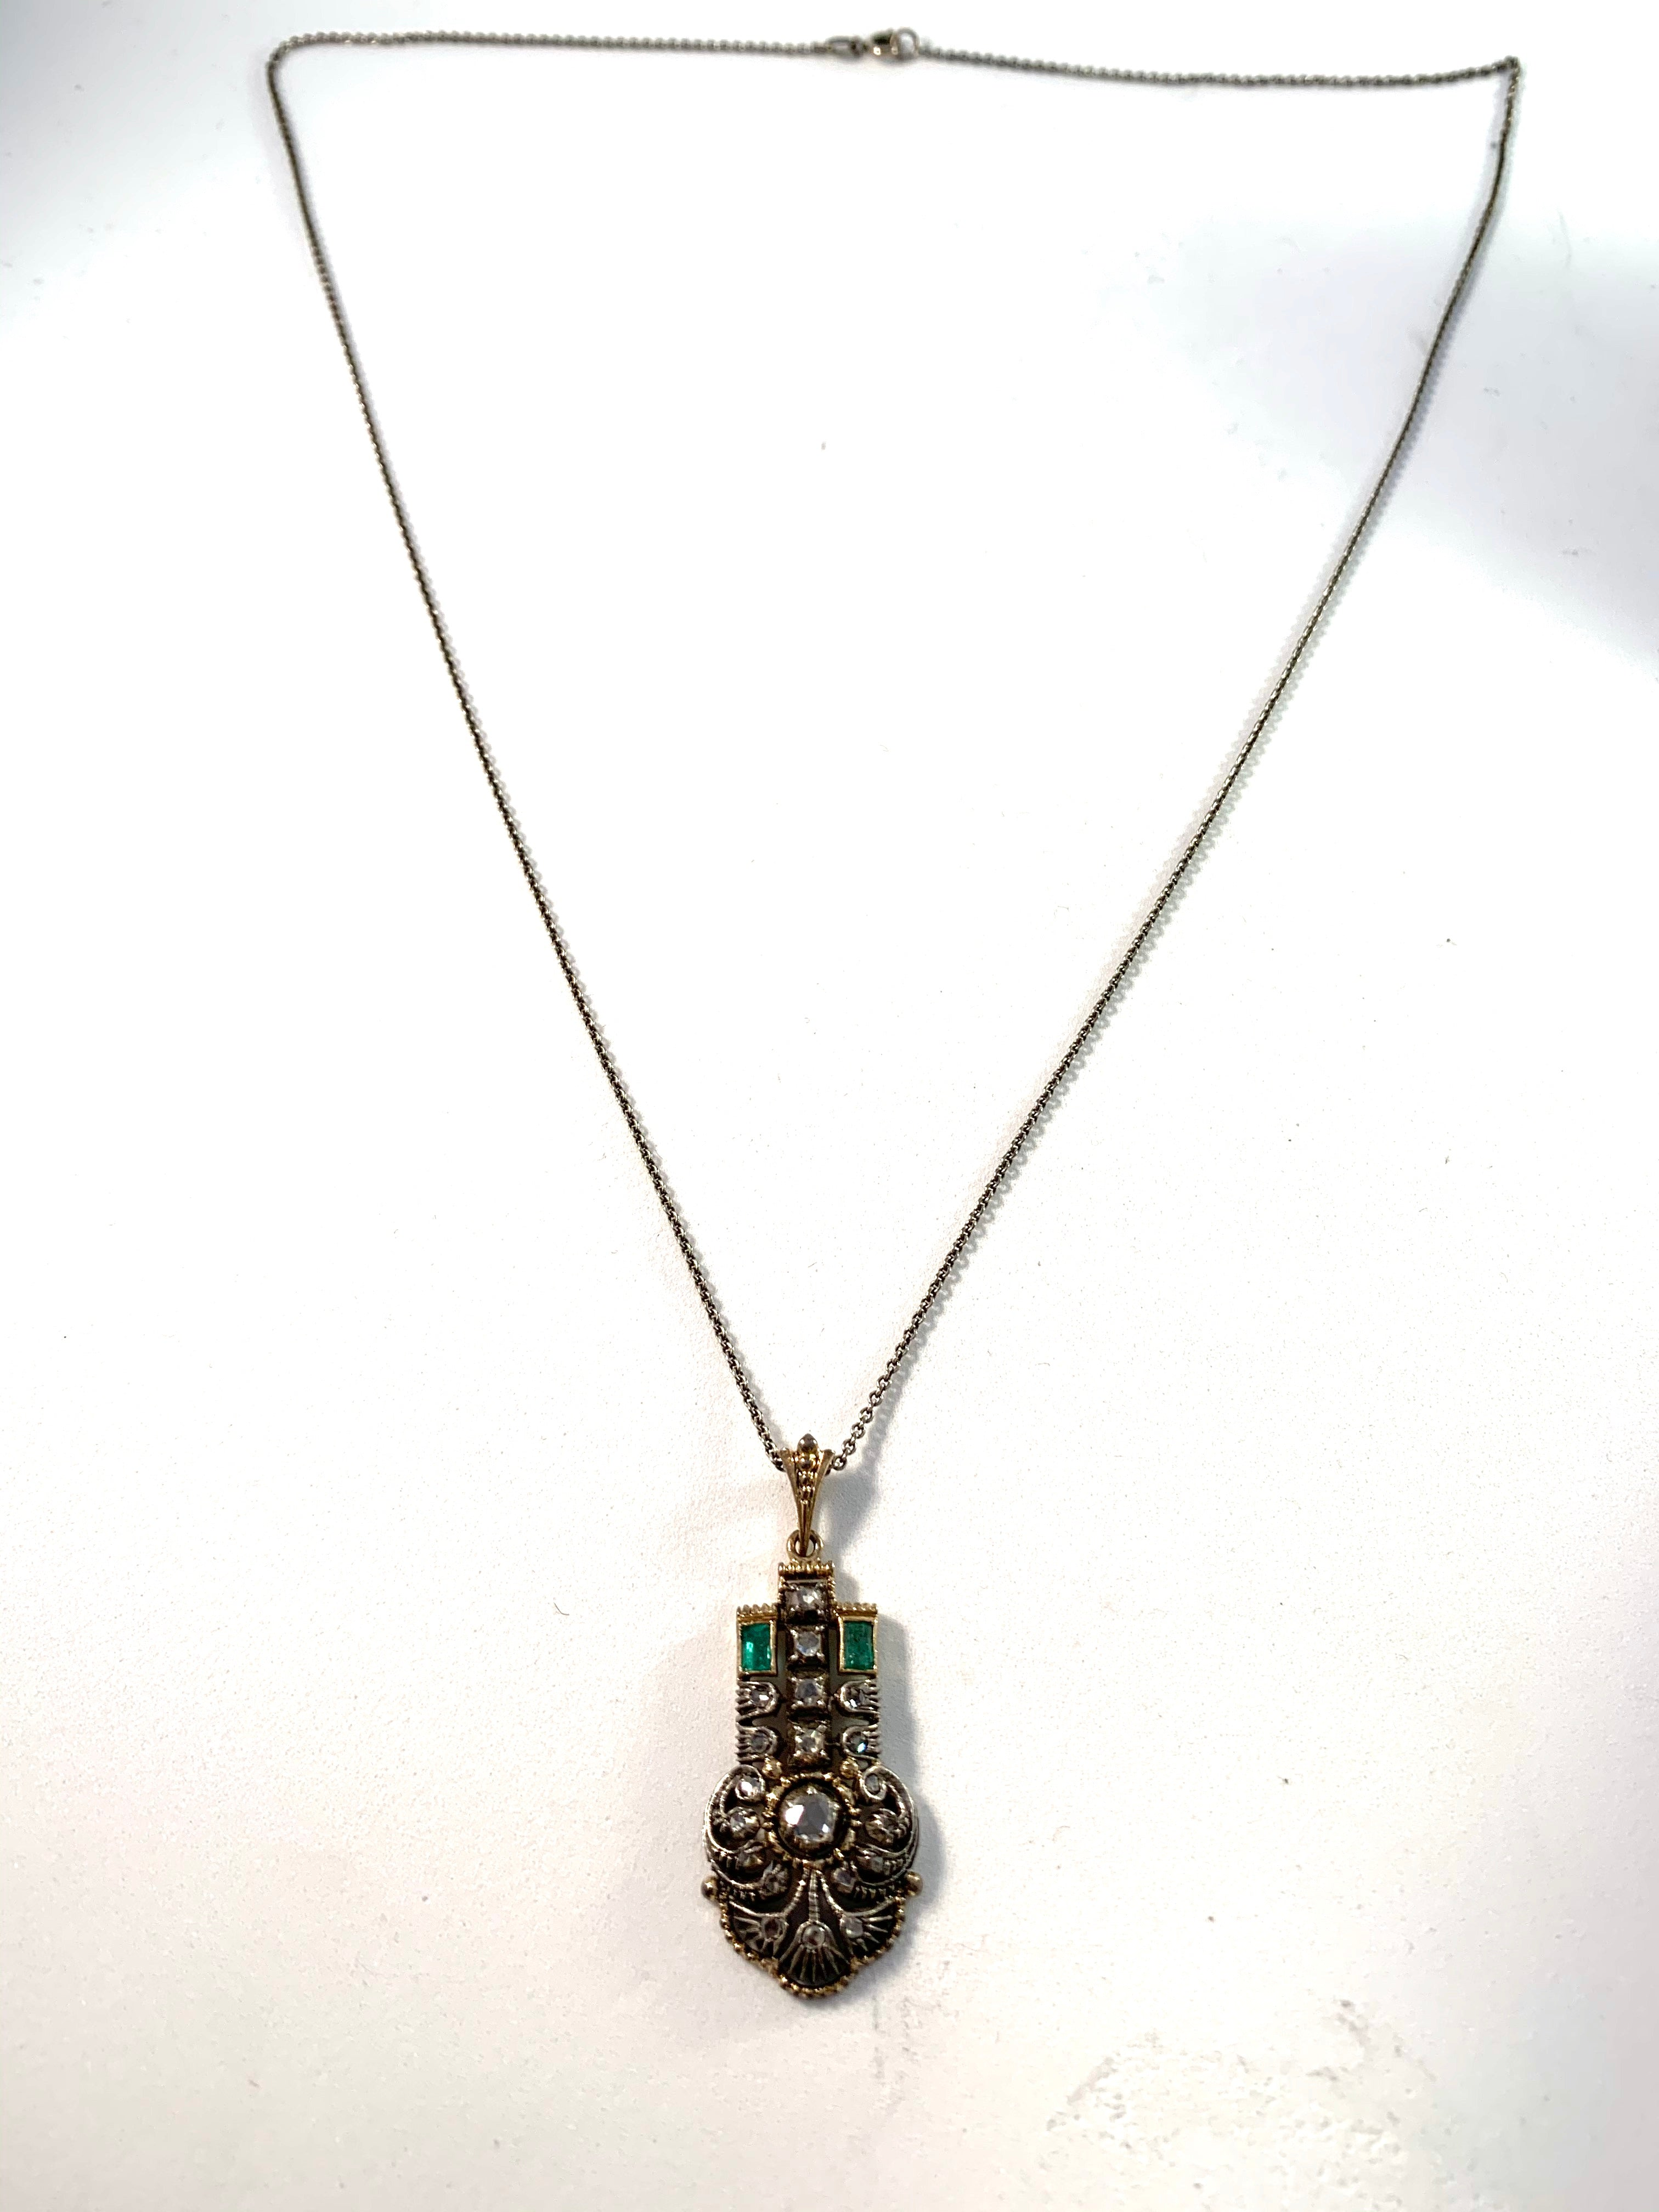 Dahlgren, Sweden 1930 Art Deco 18k Gold Diamond Emerald Pendant.